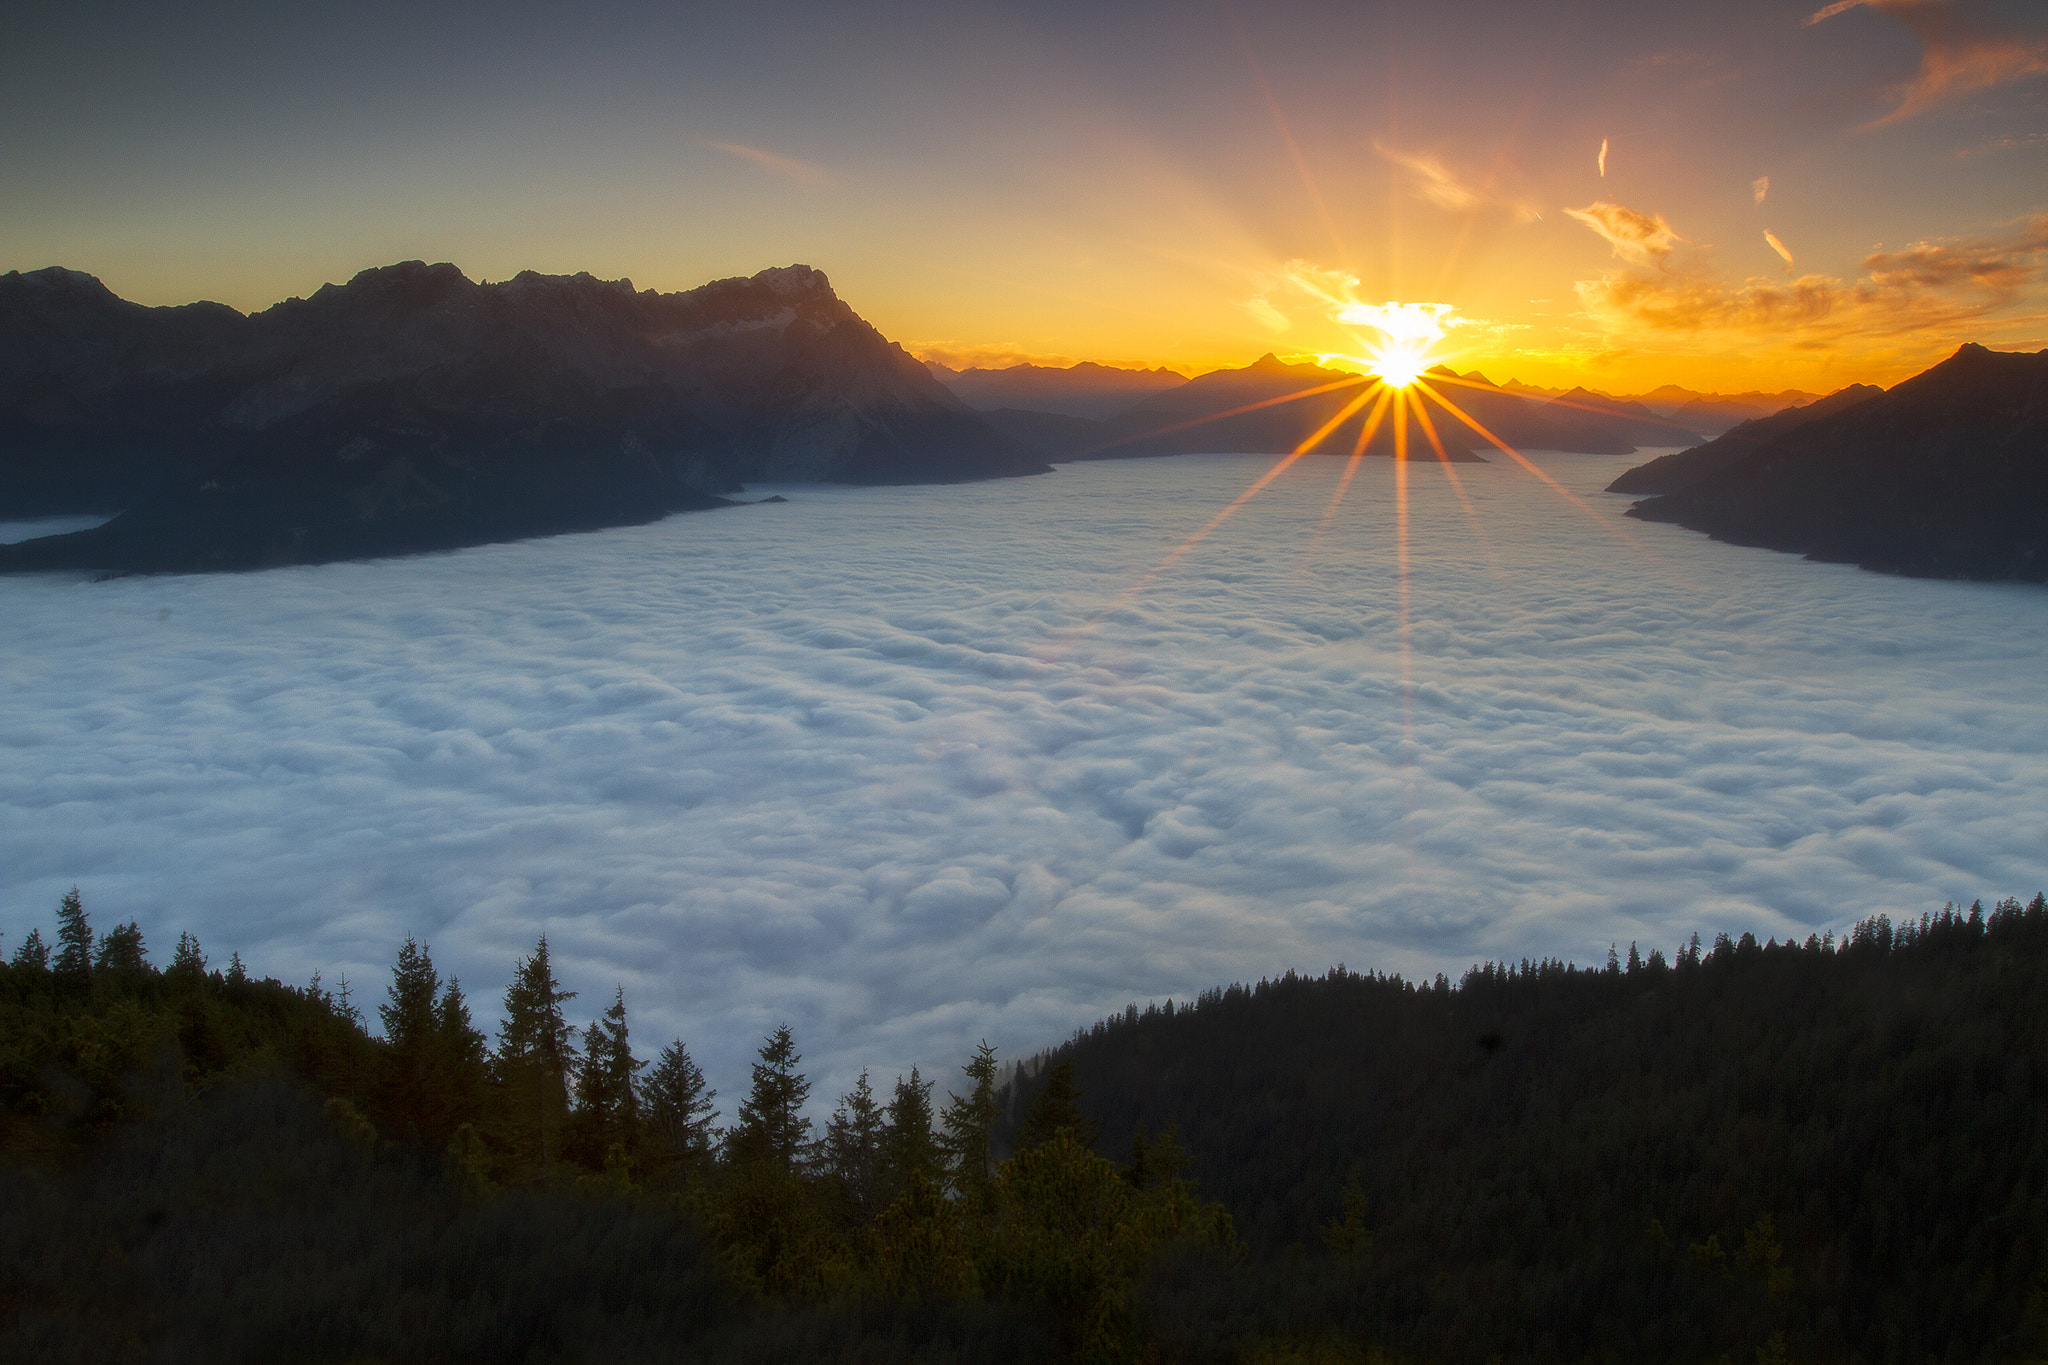 Photograph Sea of Clouds by Brad Hays on 500px